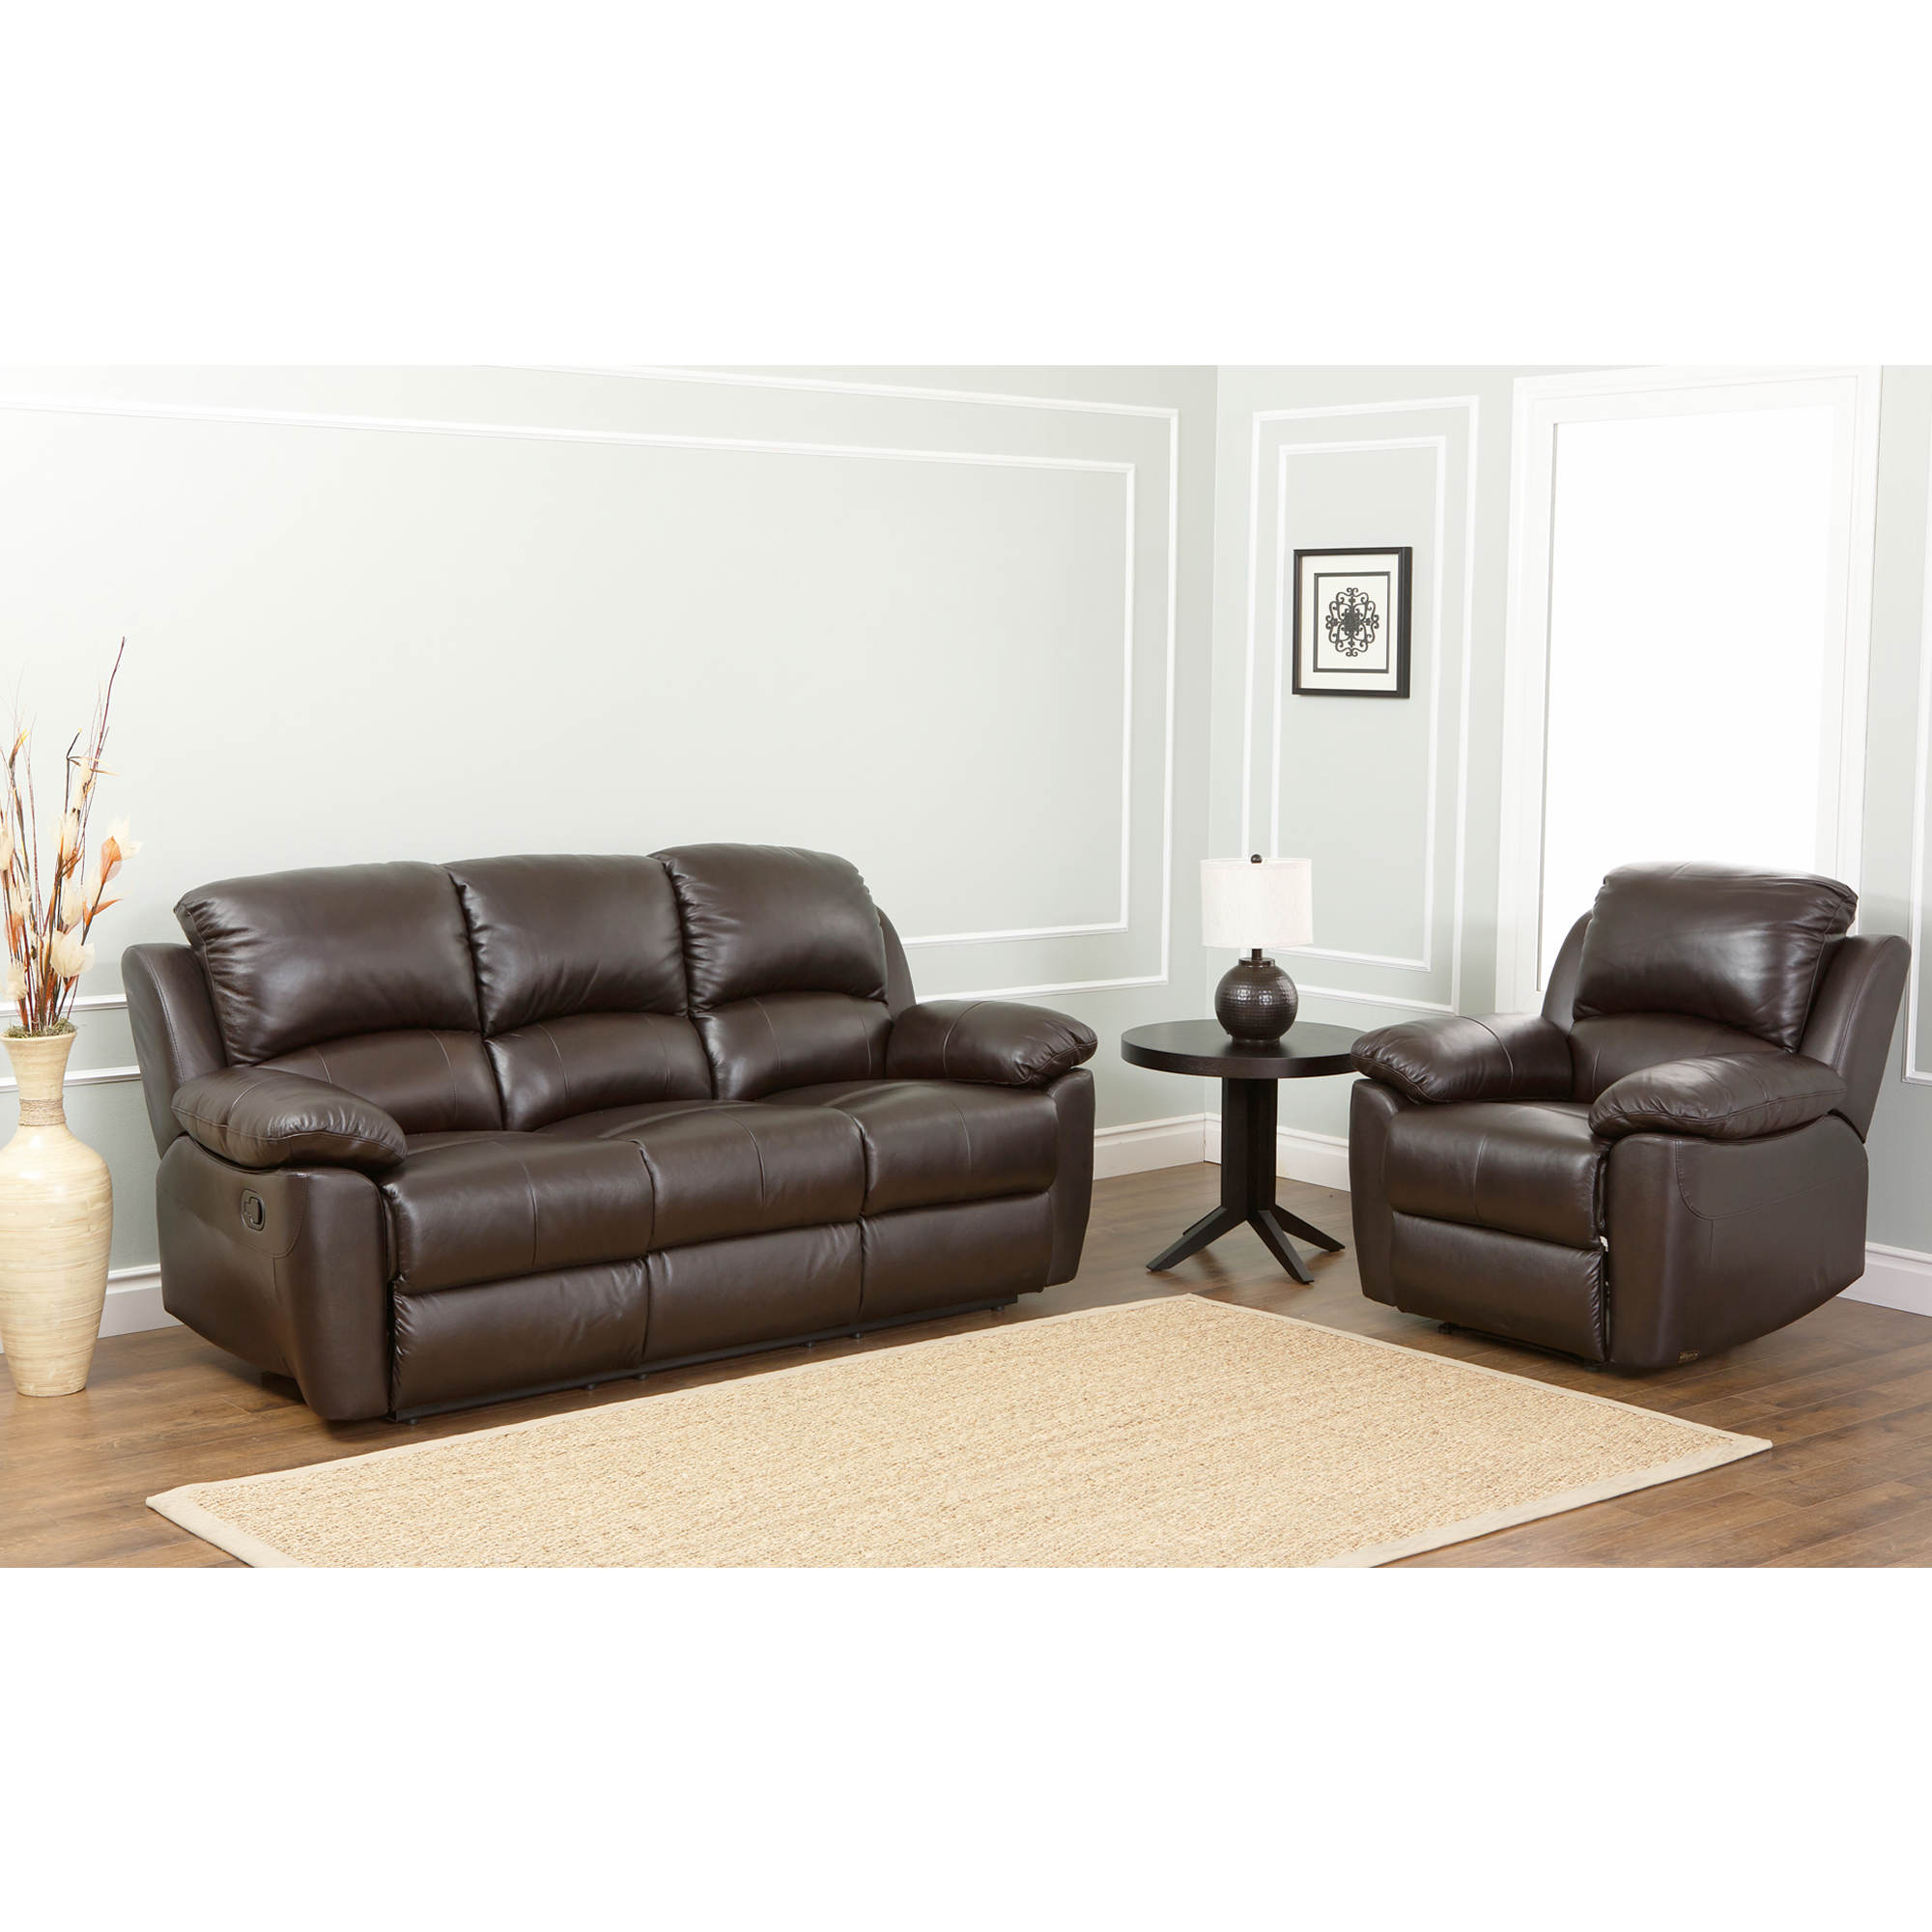 Abbyson Living Toscana Italian Leather Reclining Sofa And